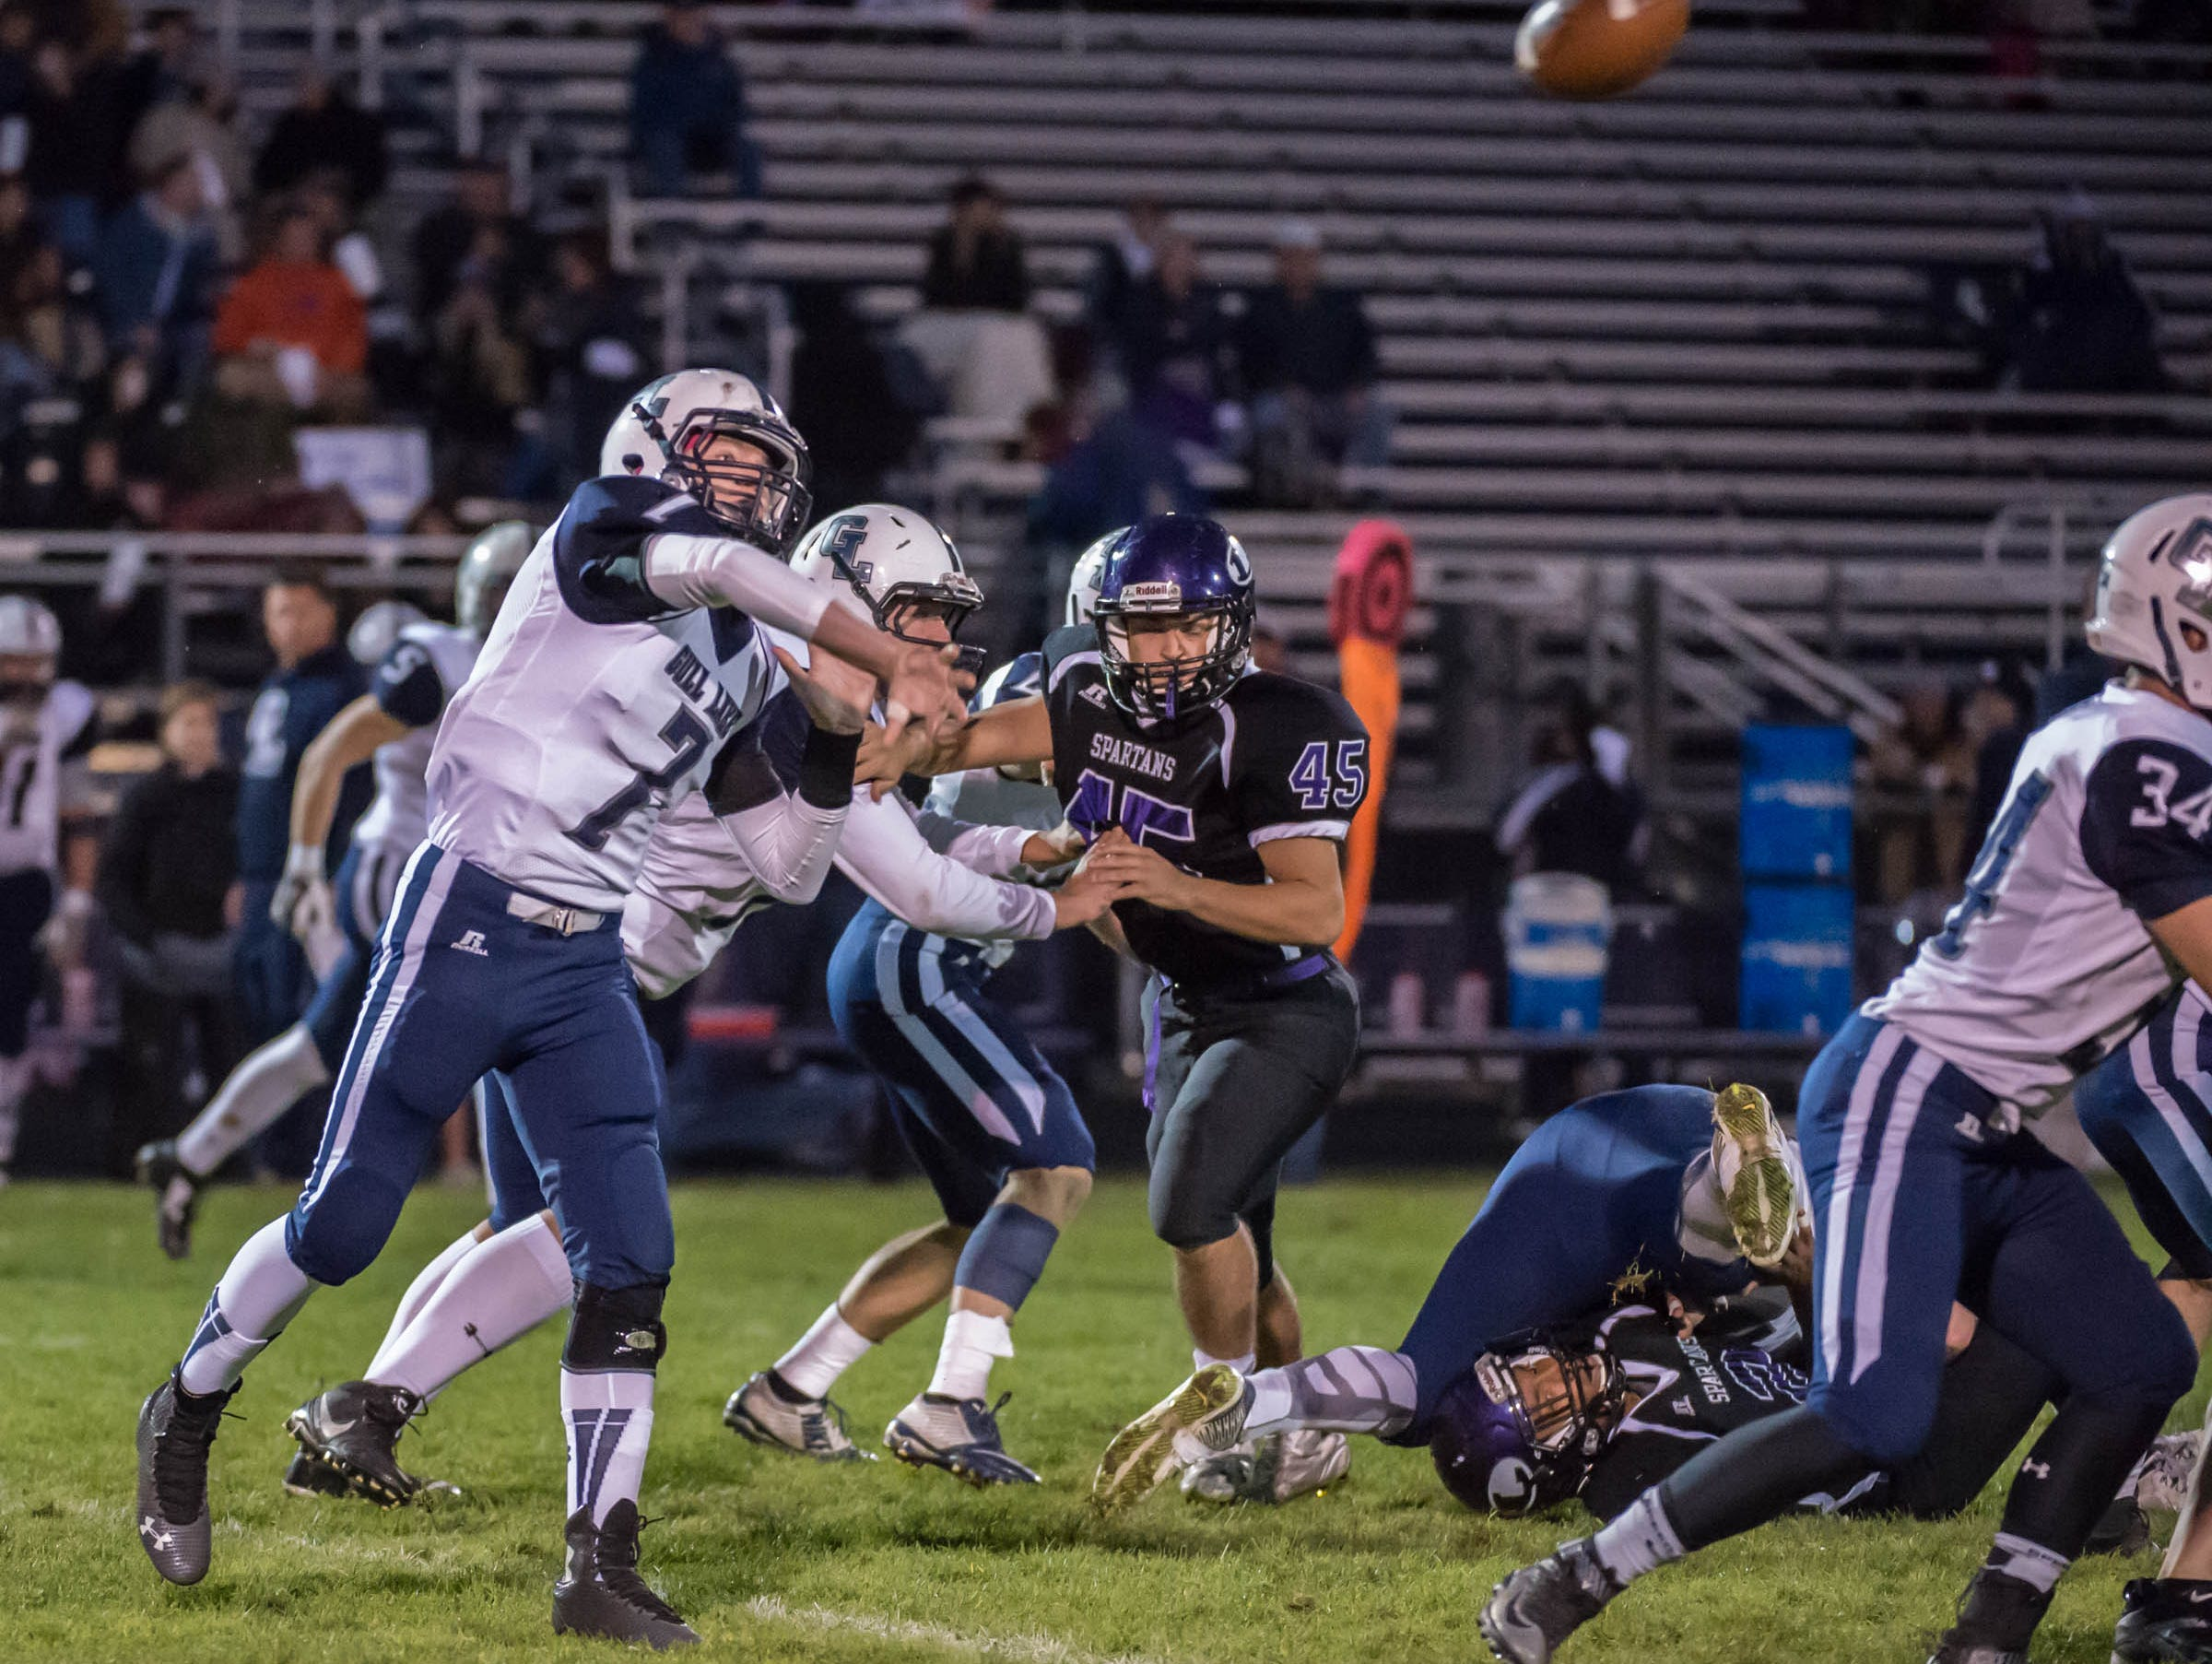 Gull Lake's Hunter Snyder (7) throws a pass during Friday's agme against Lakeview.